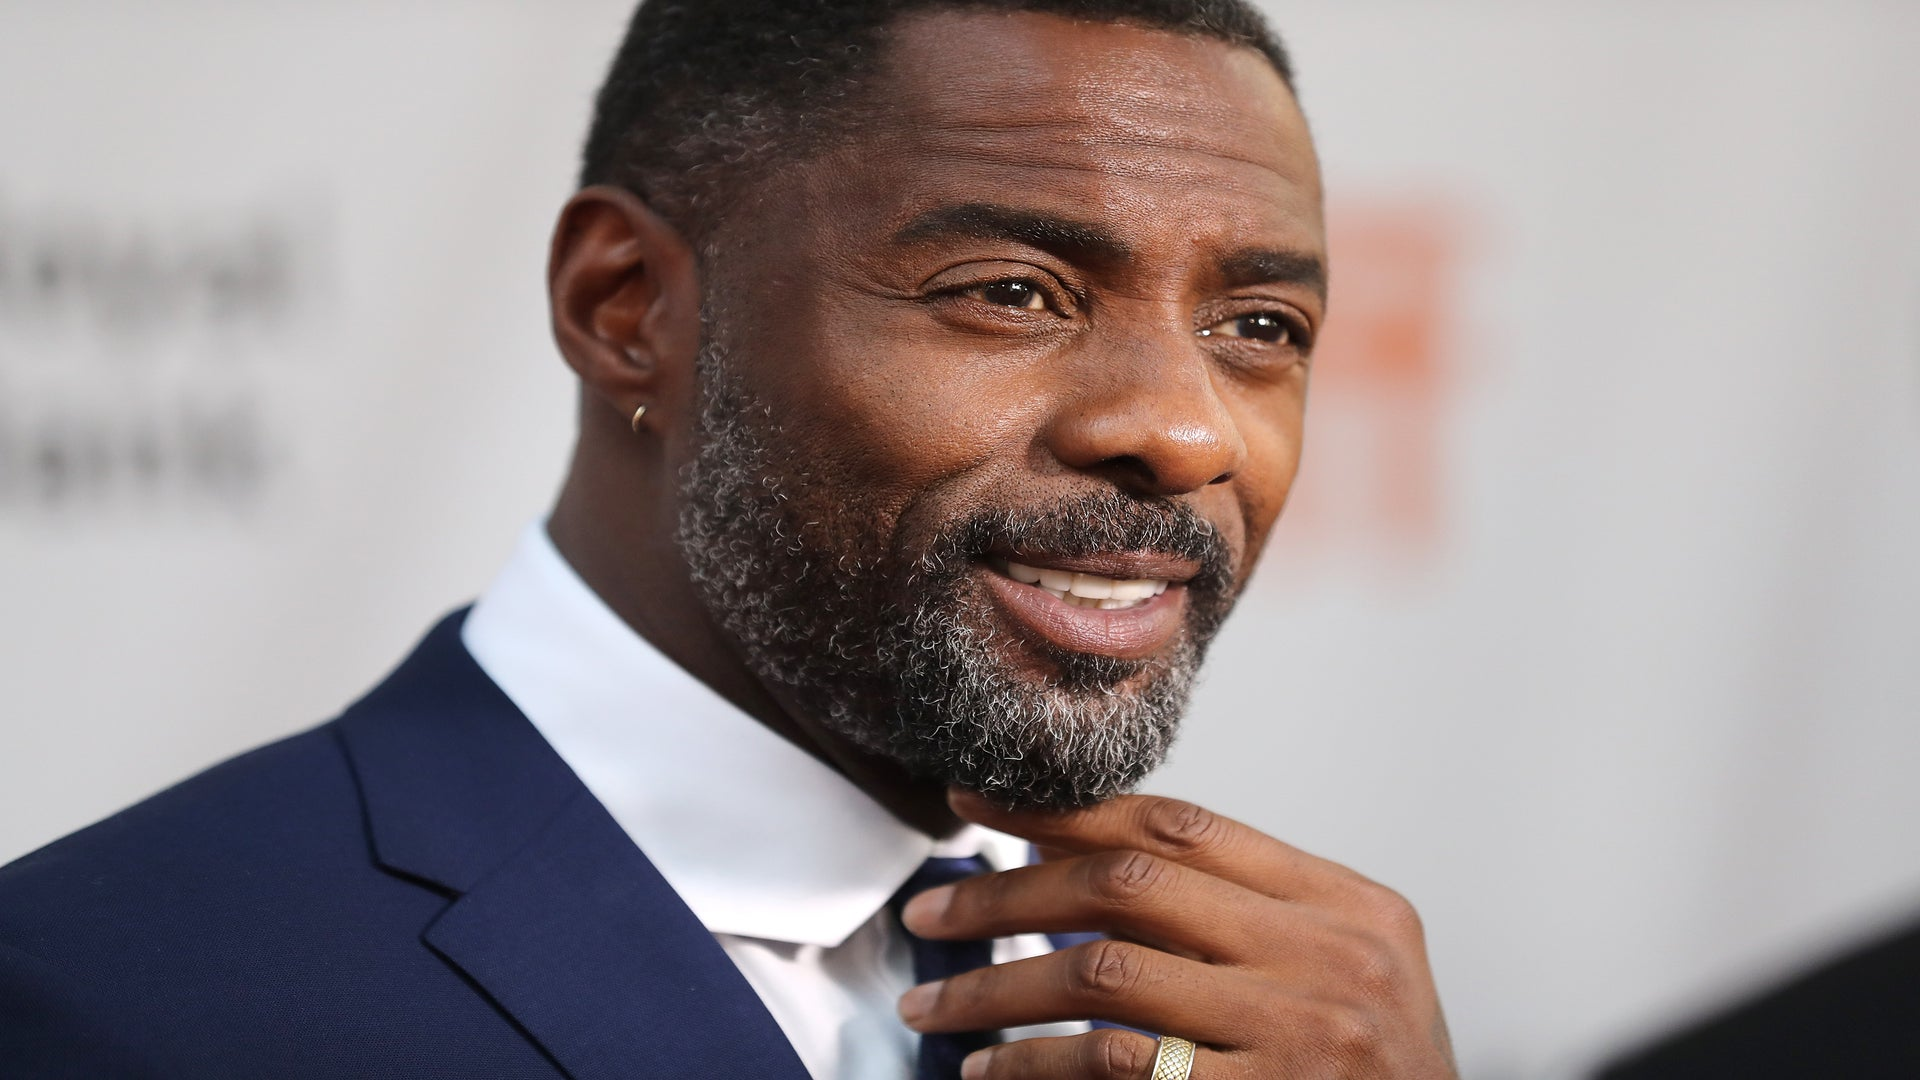 Idris Elba Is People Magazine's Sexiest Man Alive Because Water Is Wet